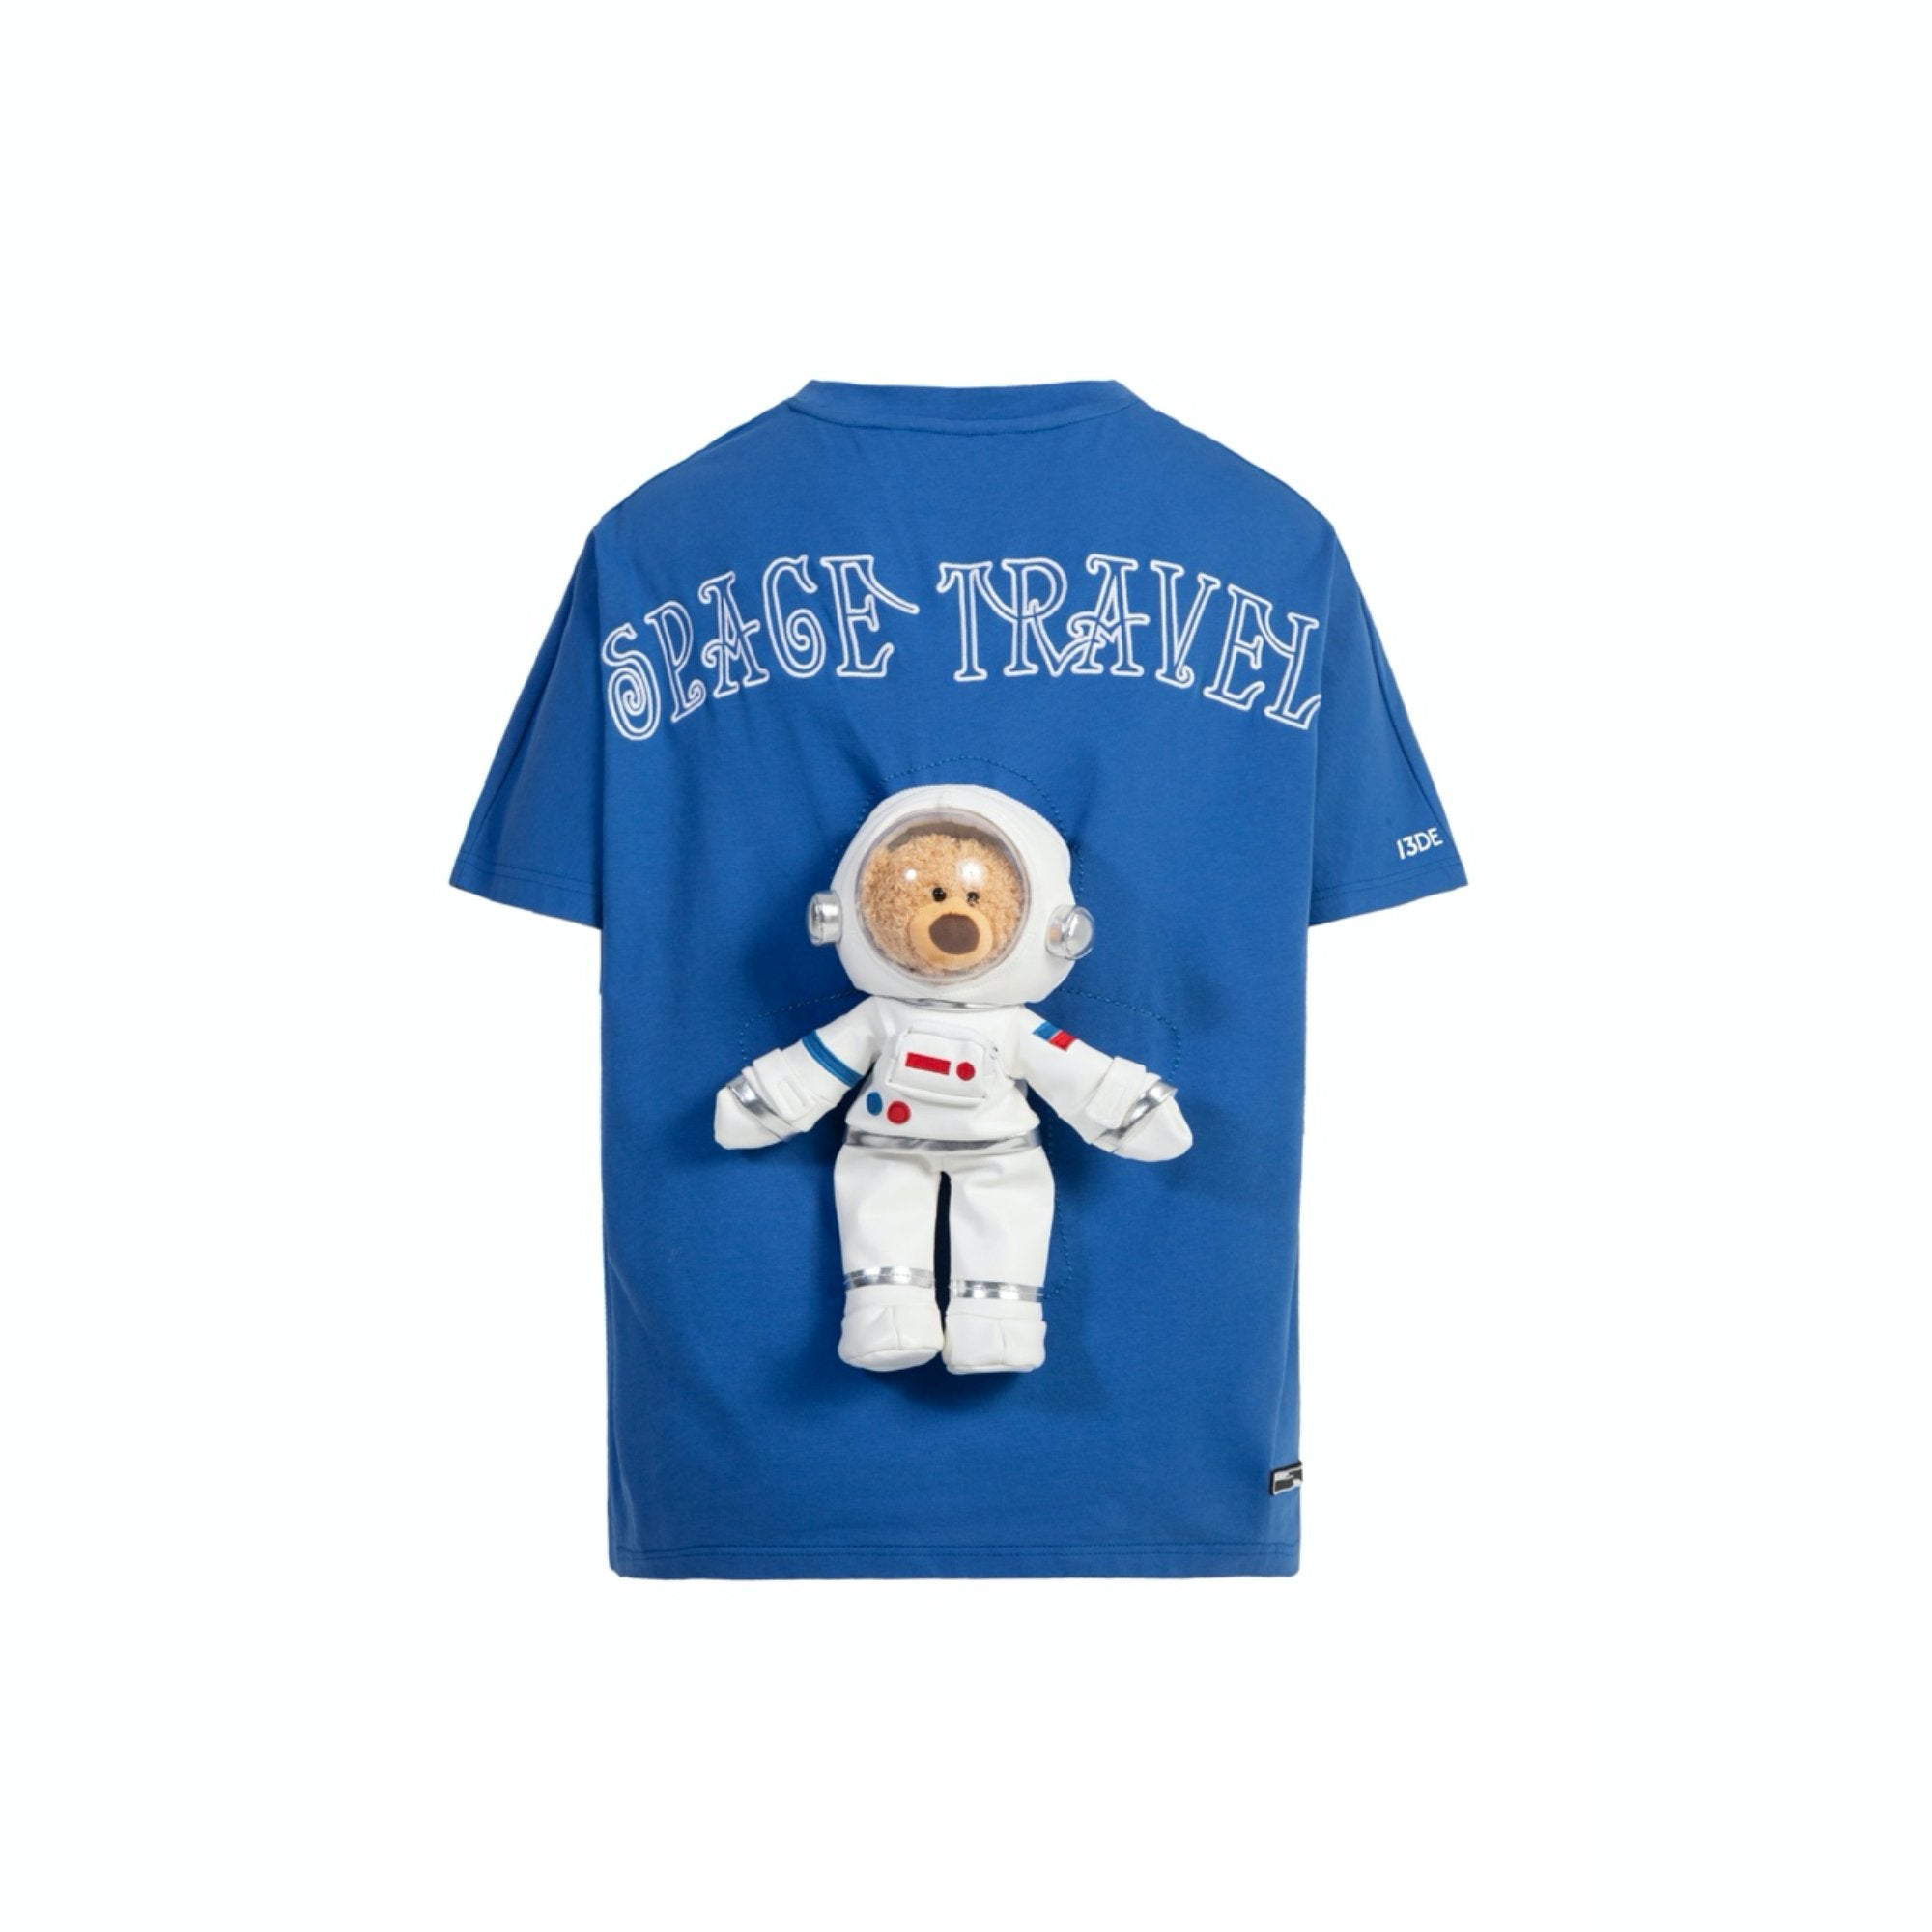 13 DE MARZO Astronaut Teddy Bear Tee Blue | MADA IN CHINA